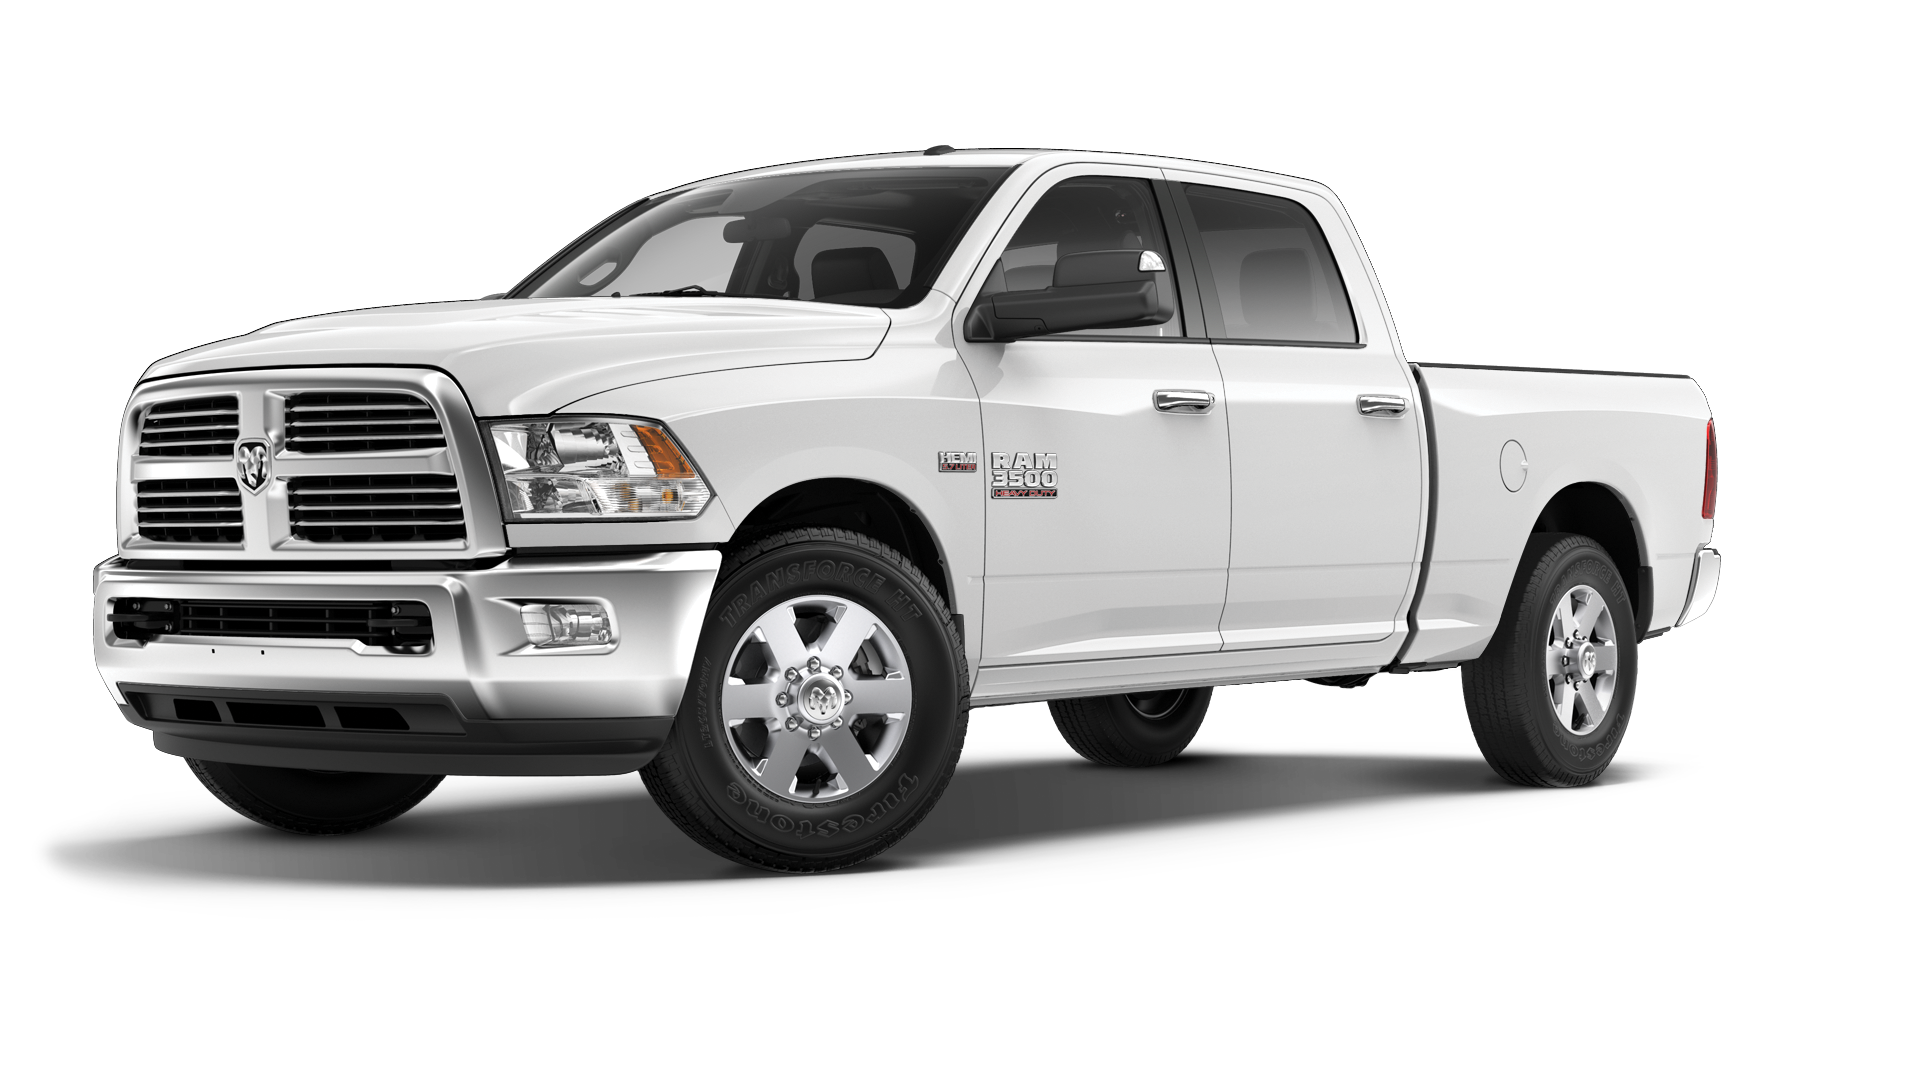 Dodge Ram 3500 2013 White 2013 Ram 3500 Knoxville tn